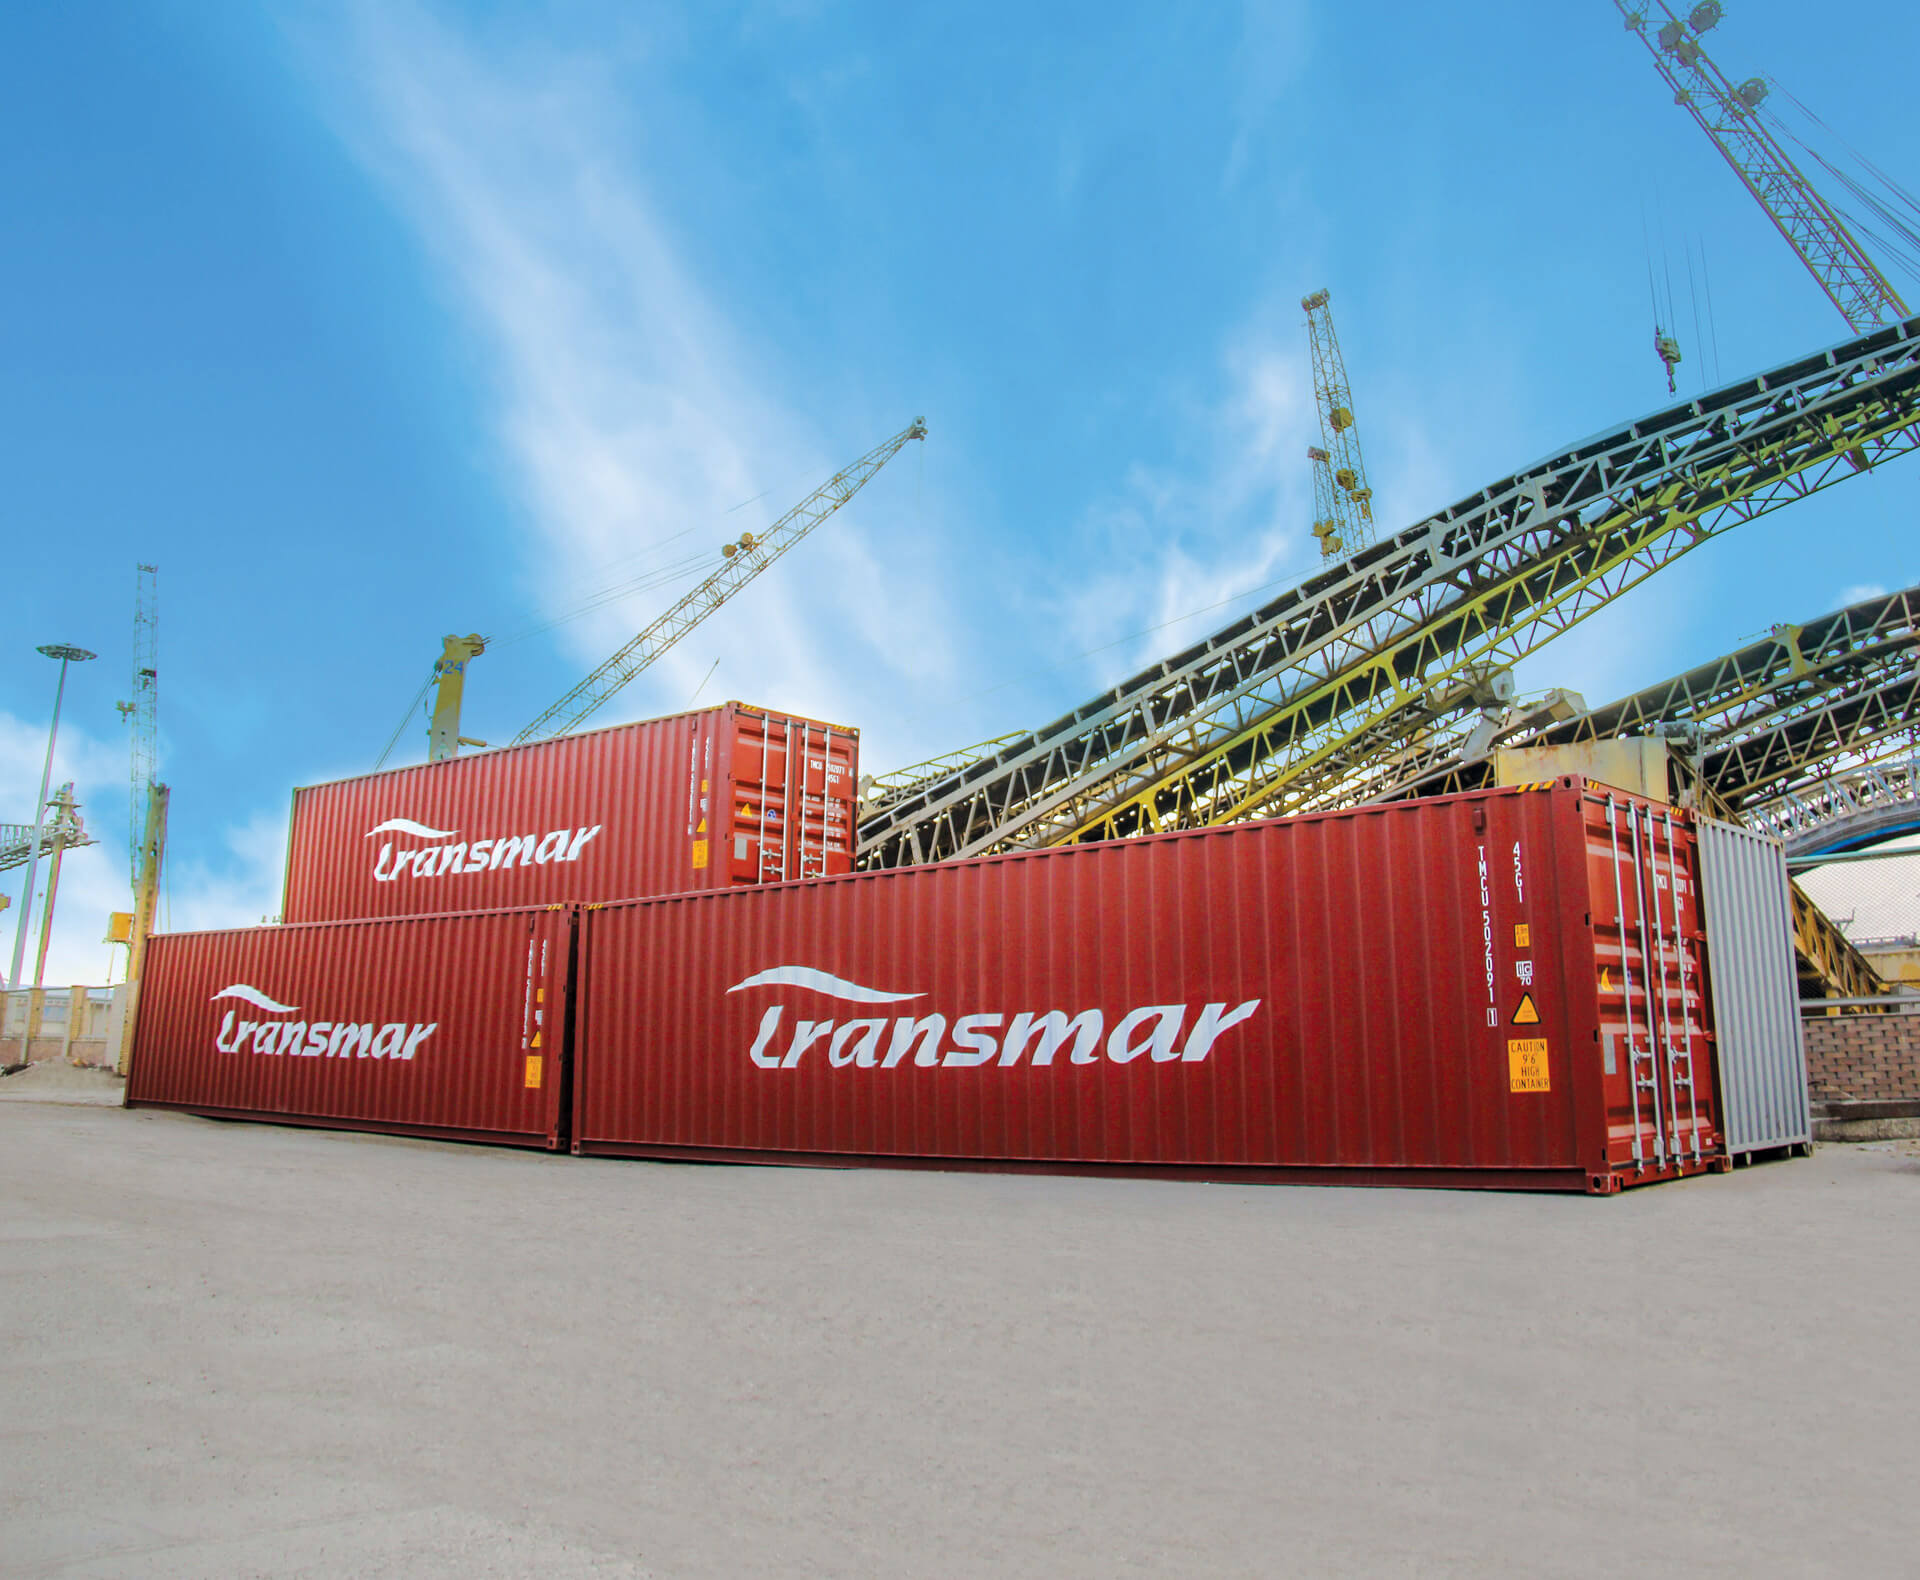 Transmar increases service levels with extra tonnage from Egypt Port of Adabiya to Jeddah